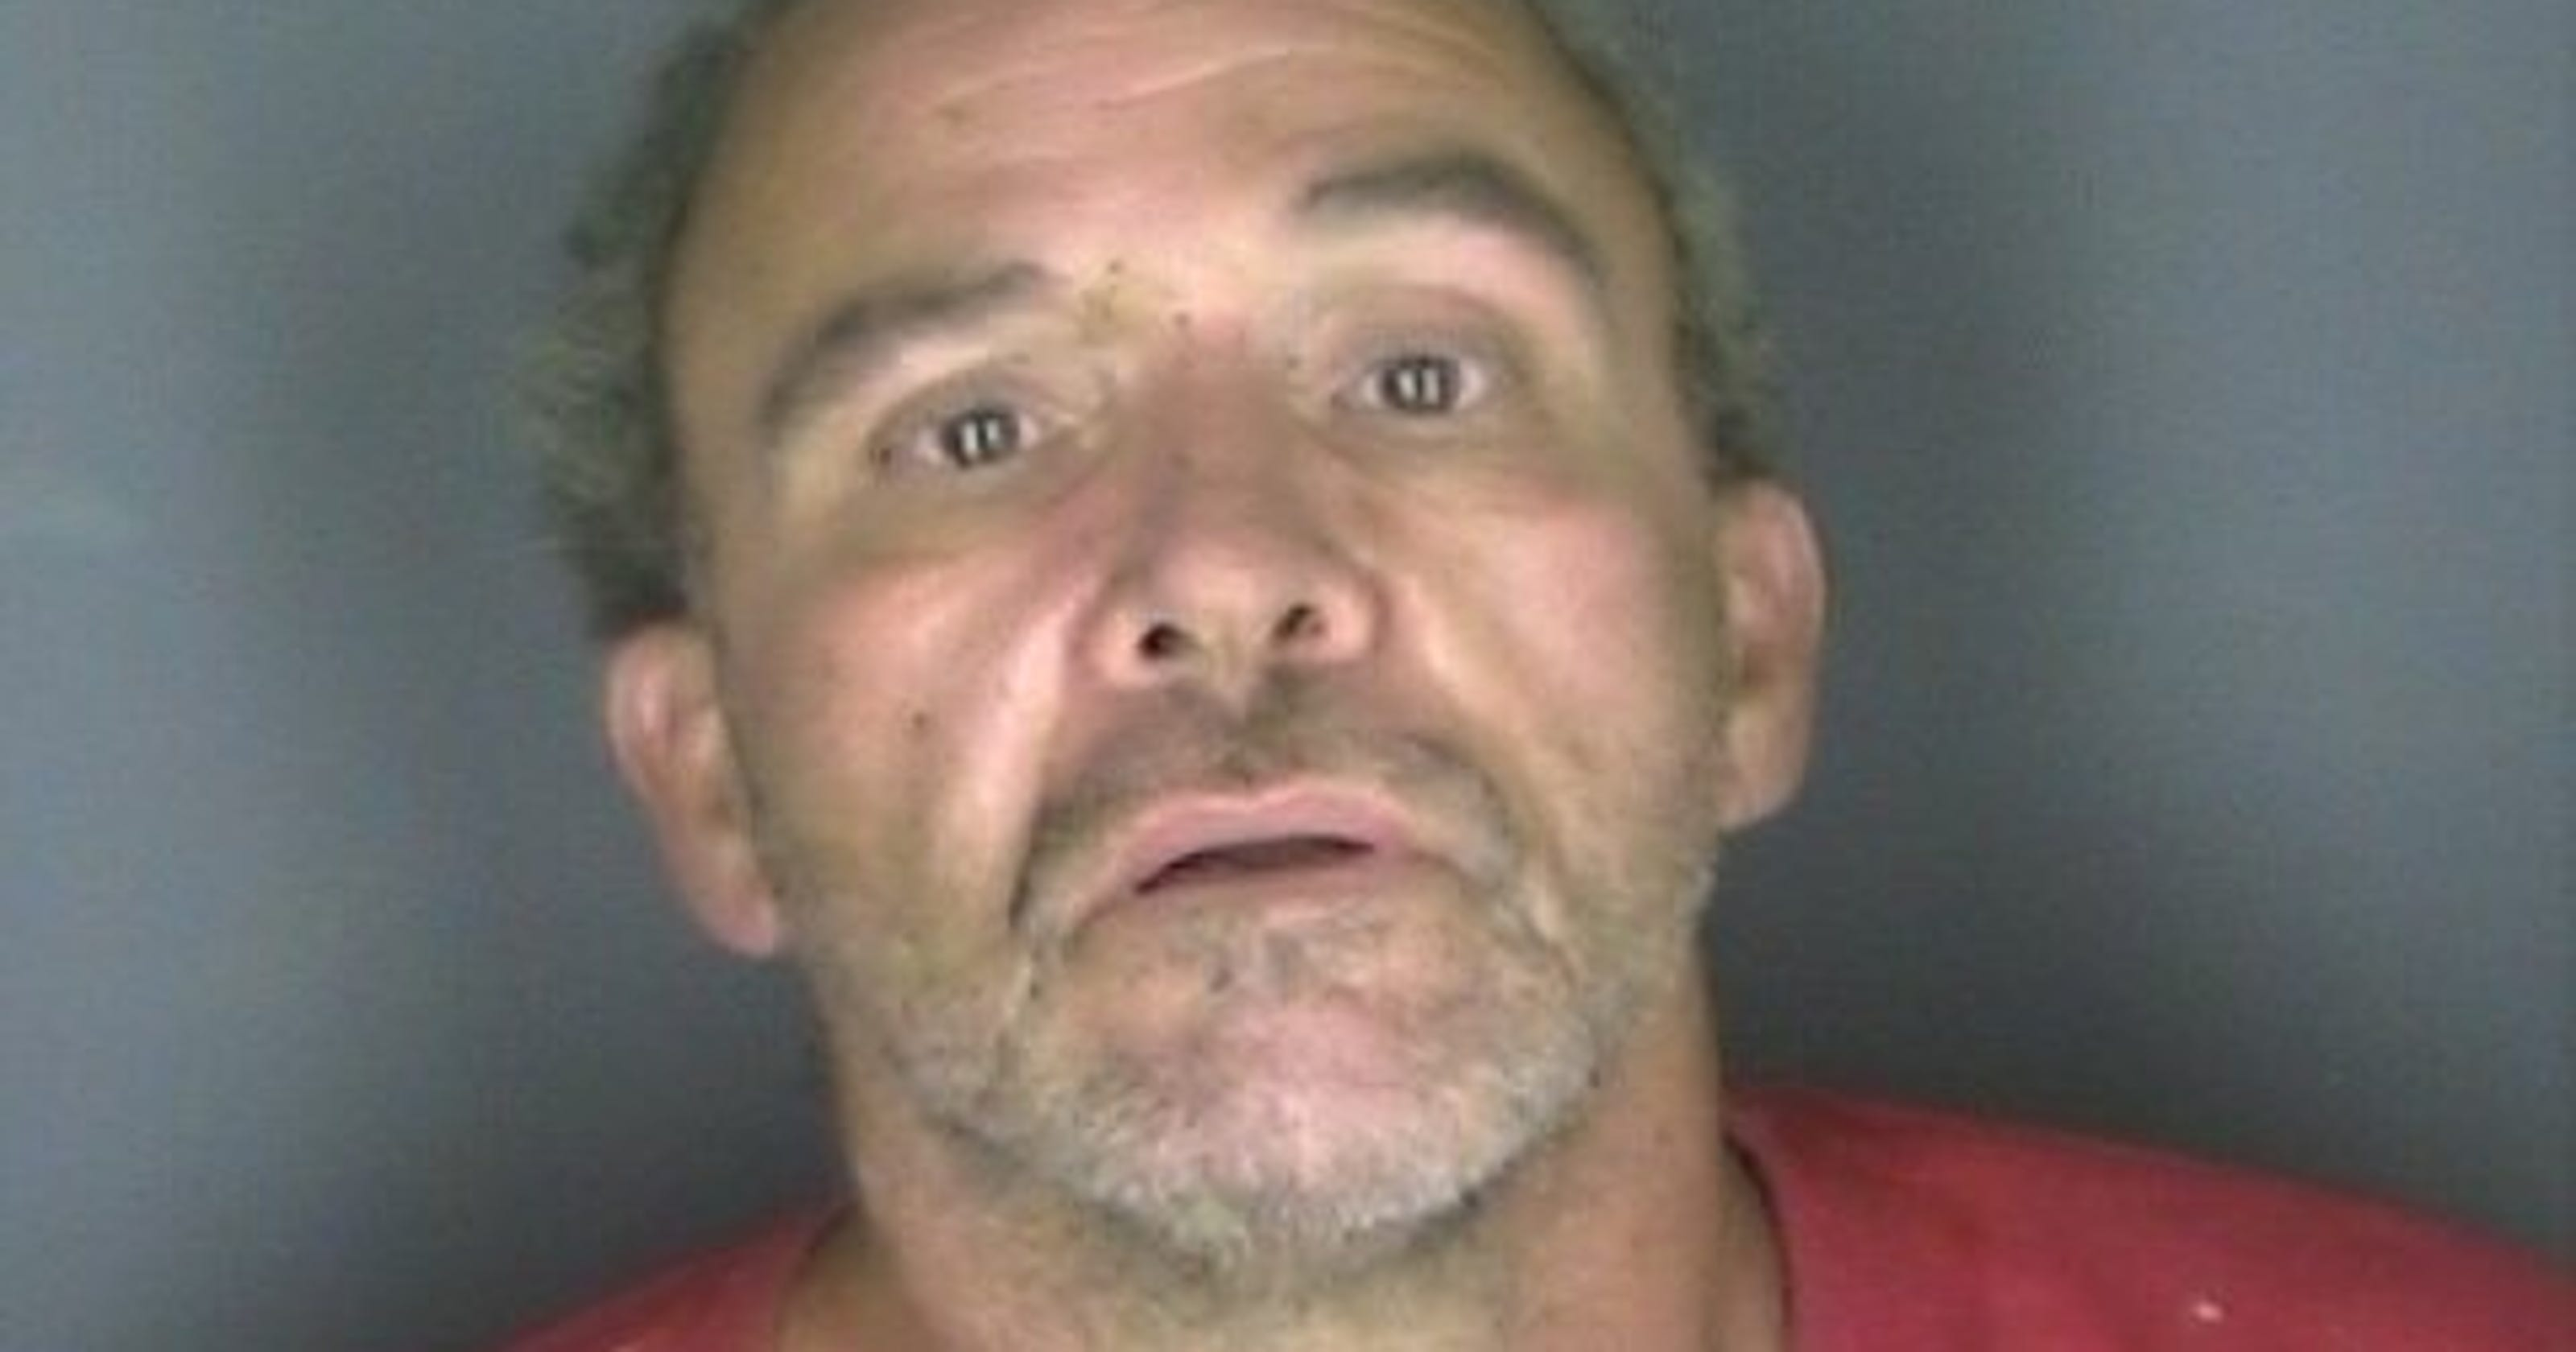 CRIME ROUNDUP: Meth lab bust results in felony charge